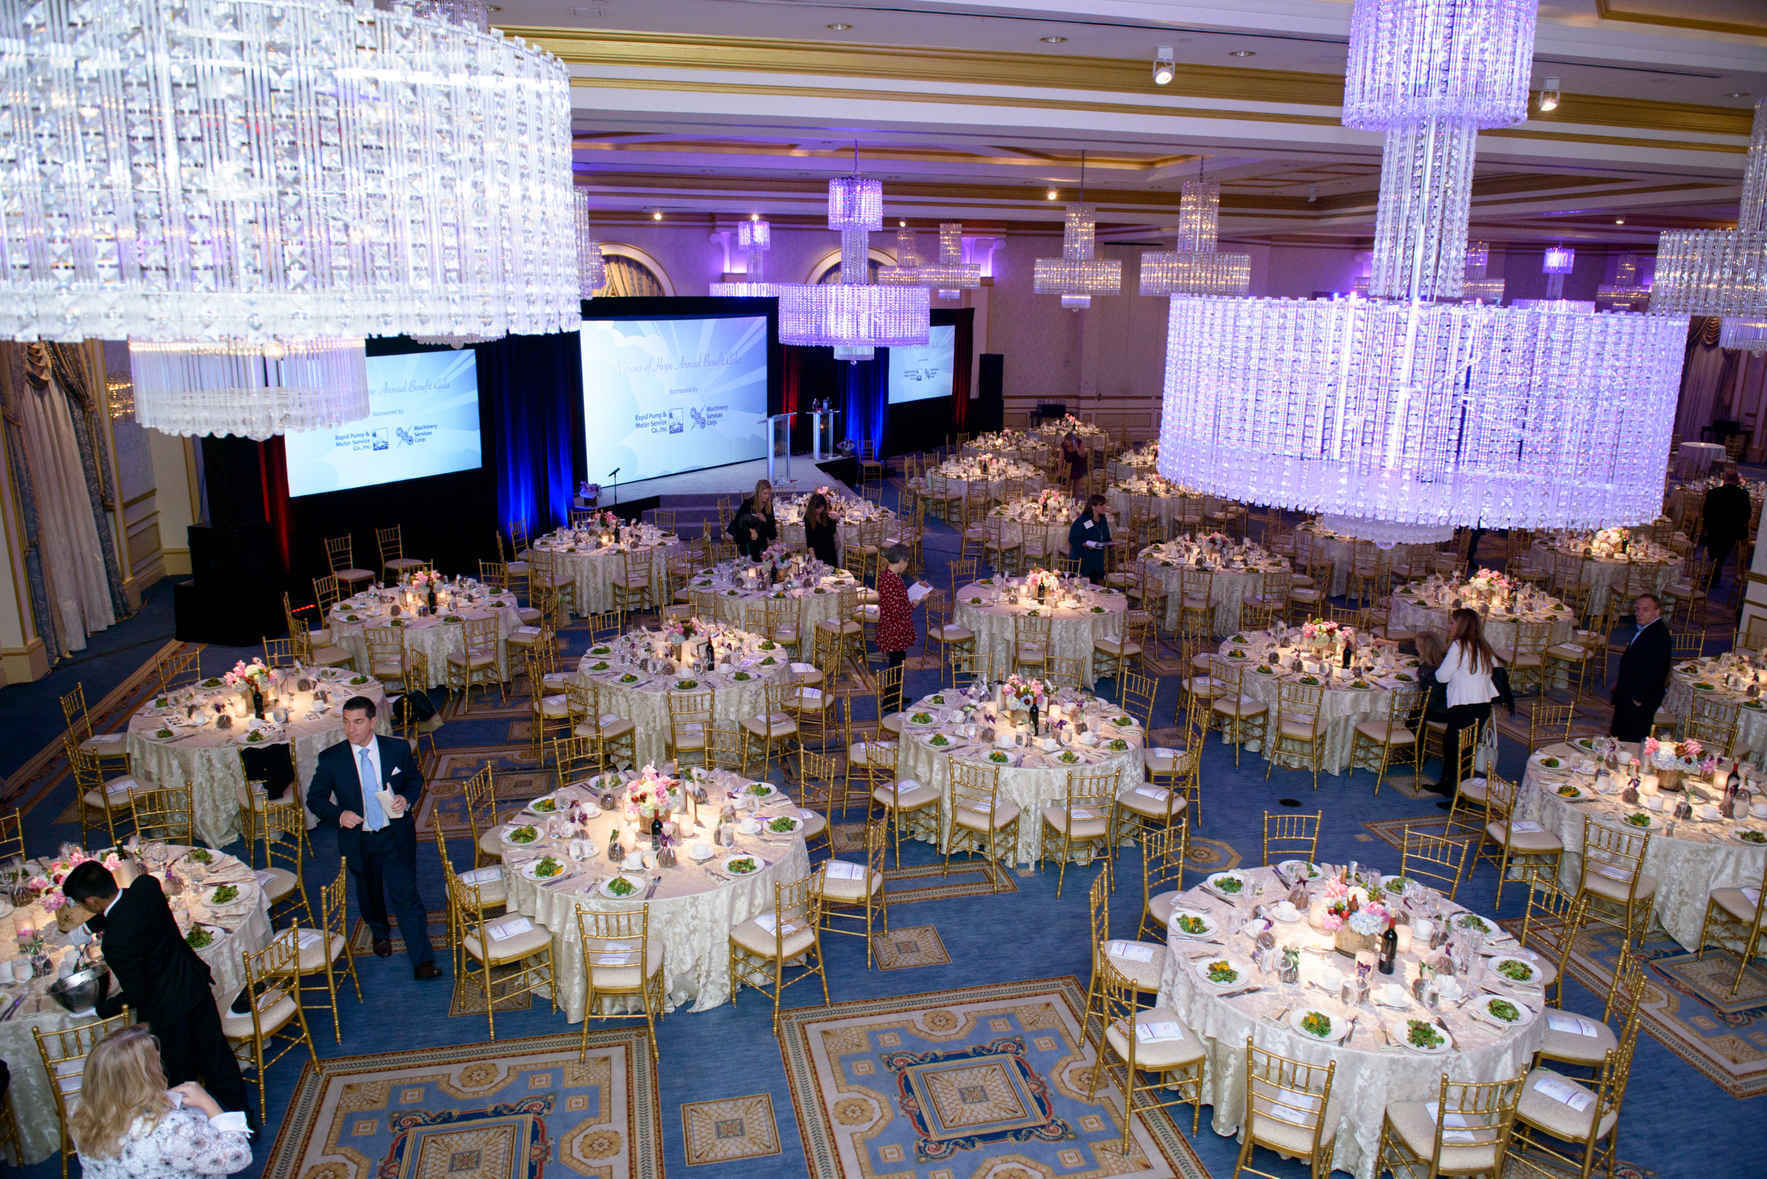 Visions of Hope Annual Benefit Gala image